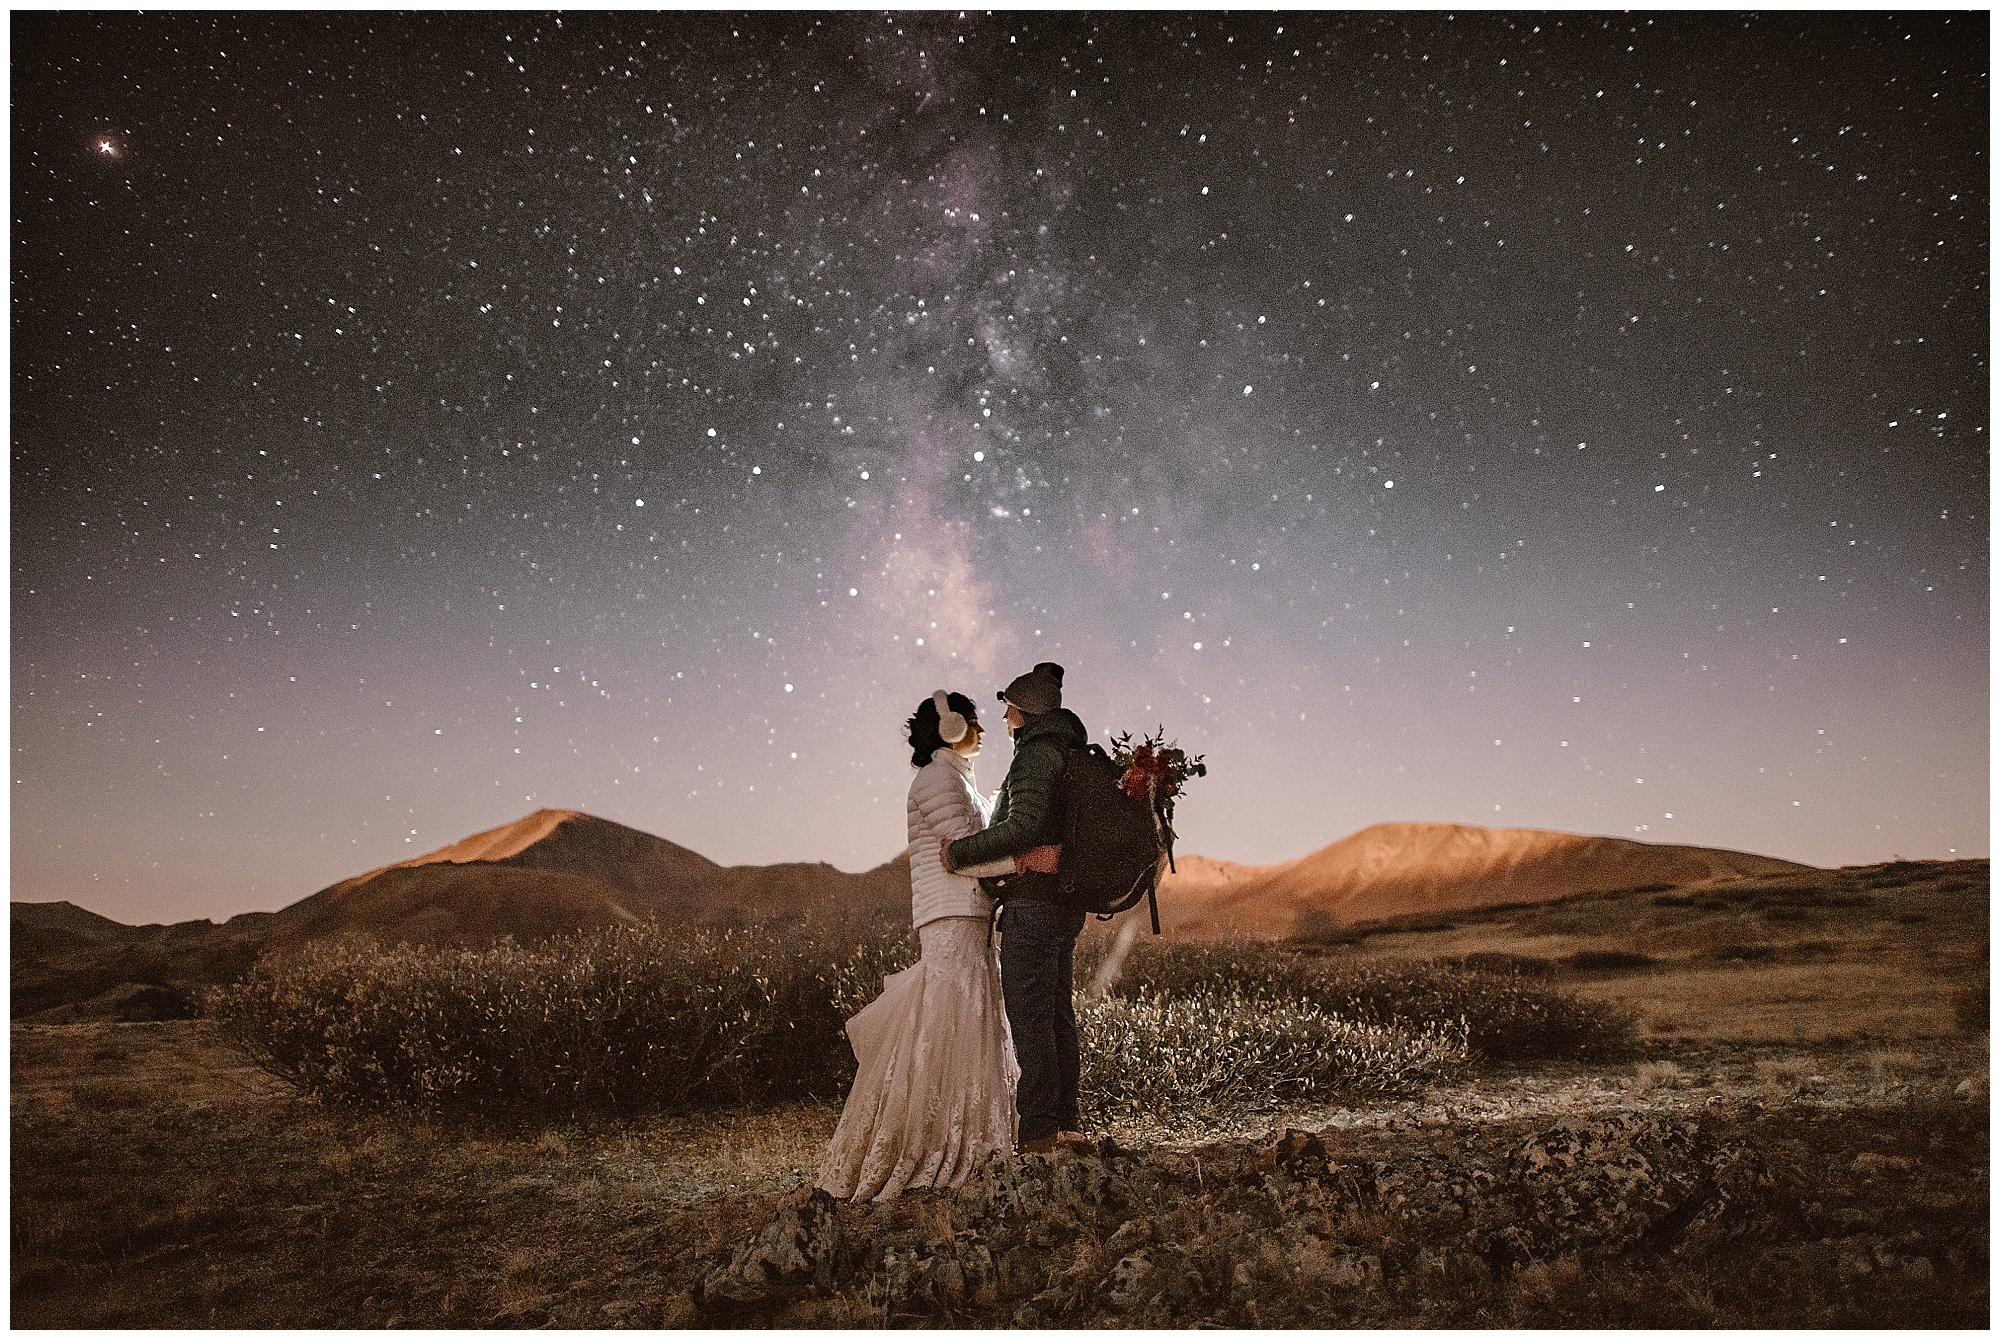 For winter elopements, make sure you dress in layers and take frequent breaks to stay warm. Stay out after the sun goes down at your hiking elopement and you'll get stunning images of the Milky Way Galaxy. This image was also selected to Junebug Wedding's top 50 Best Wedding Photos in the World! Where you elope and how you say your vows matters! Photo by Maddie Mae, Adventure Instead Elopement Photographers.